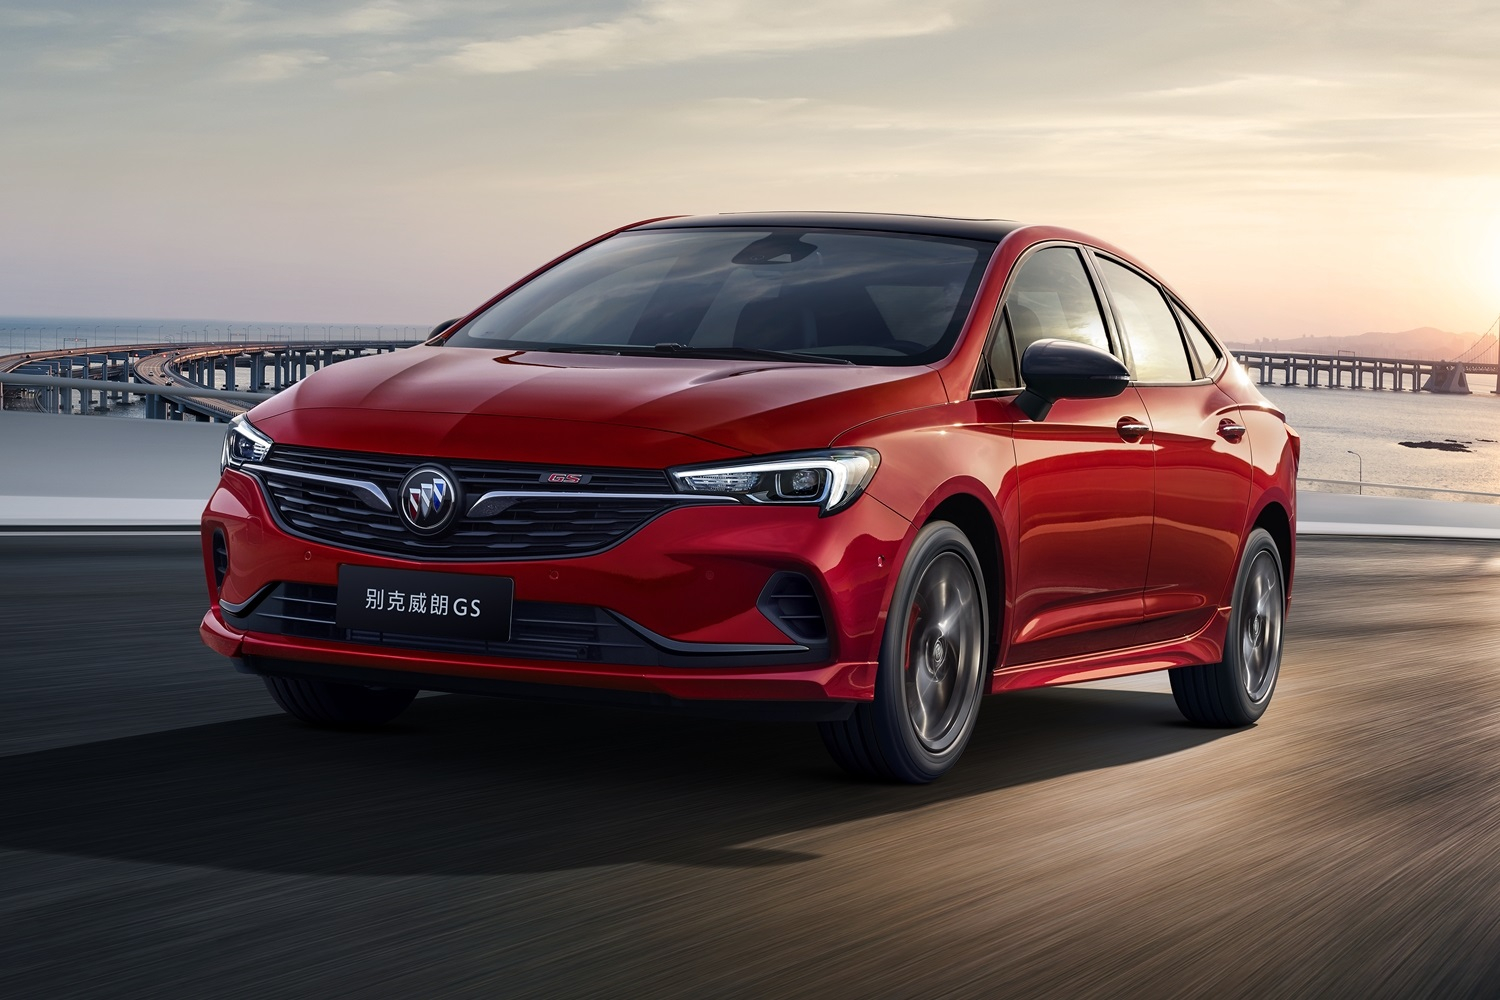 New 2021 Buick Verano Gs Launches In China | Gm Authority New 2021 Buick Verano Length, Images, Manual Transmission